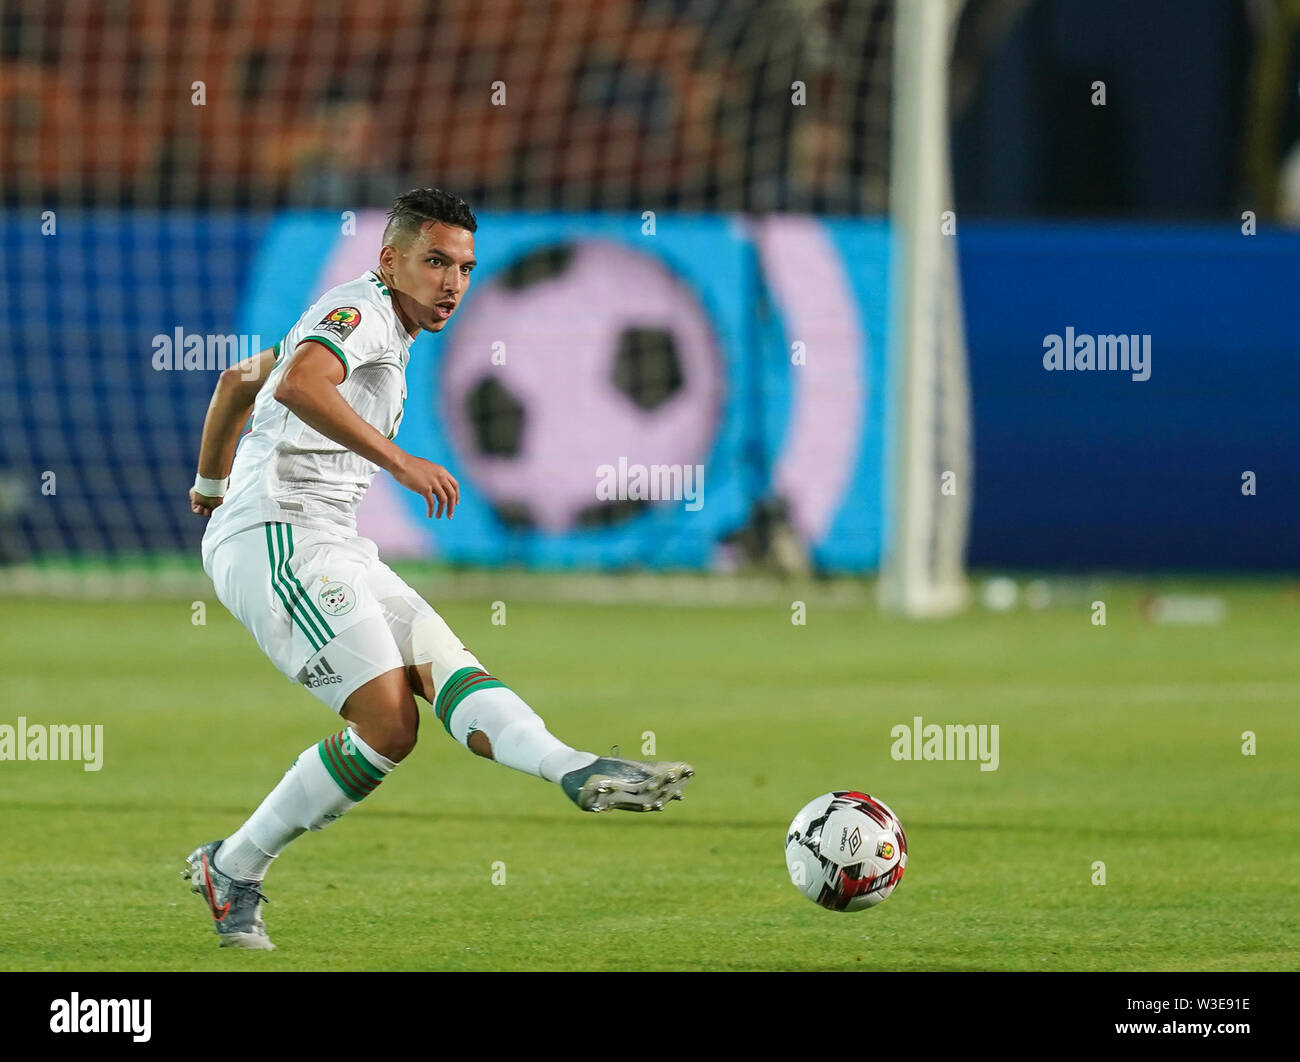 Cairo, Algeria, Egypt. 14th July, 2019. FRANCE OUT July 14, 2019: Ismael Bennacer of Algeria during the 2019 African Cup of Nations match between Algeria and Nigeria at the Cairo International Stadium in Cairo, Egypt. Ulrik Pedersen/CSM/Alamy Live News - Stock Image